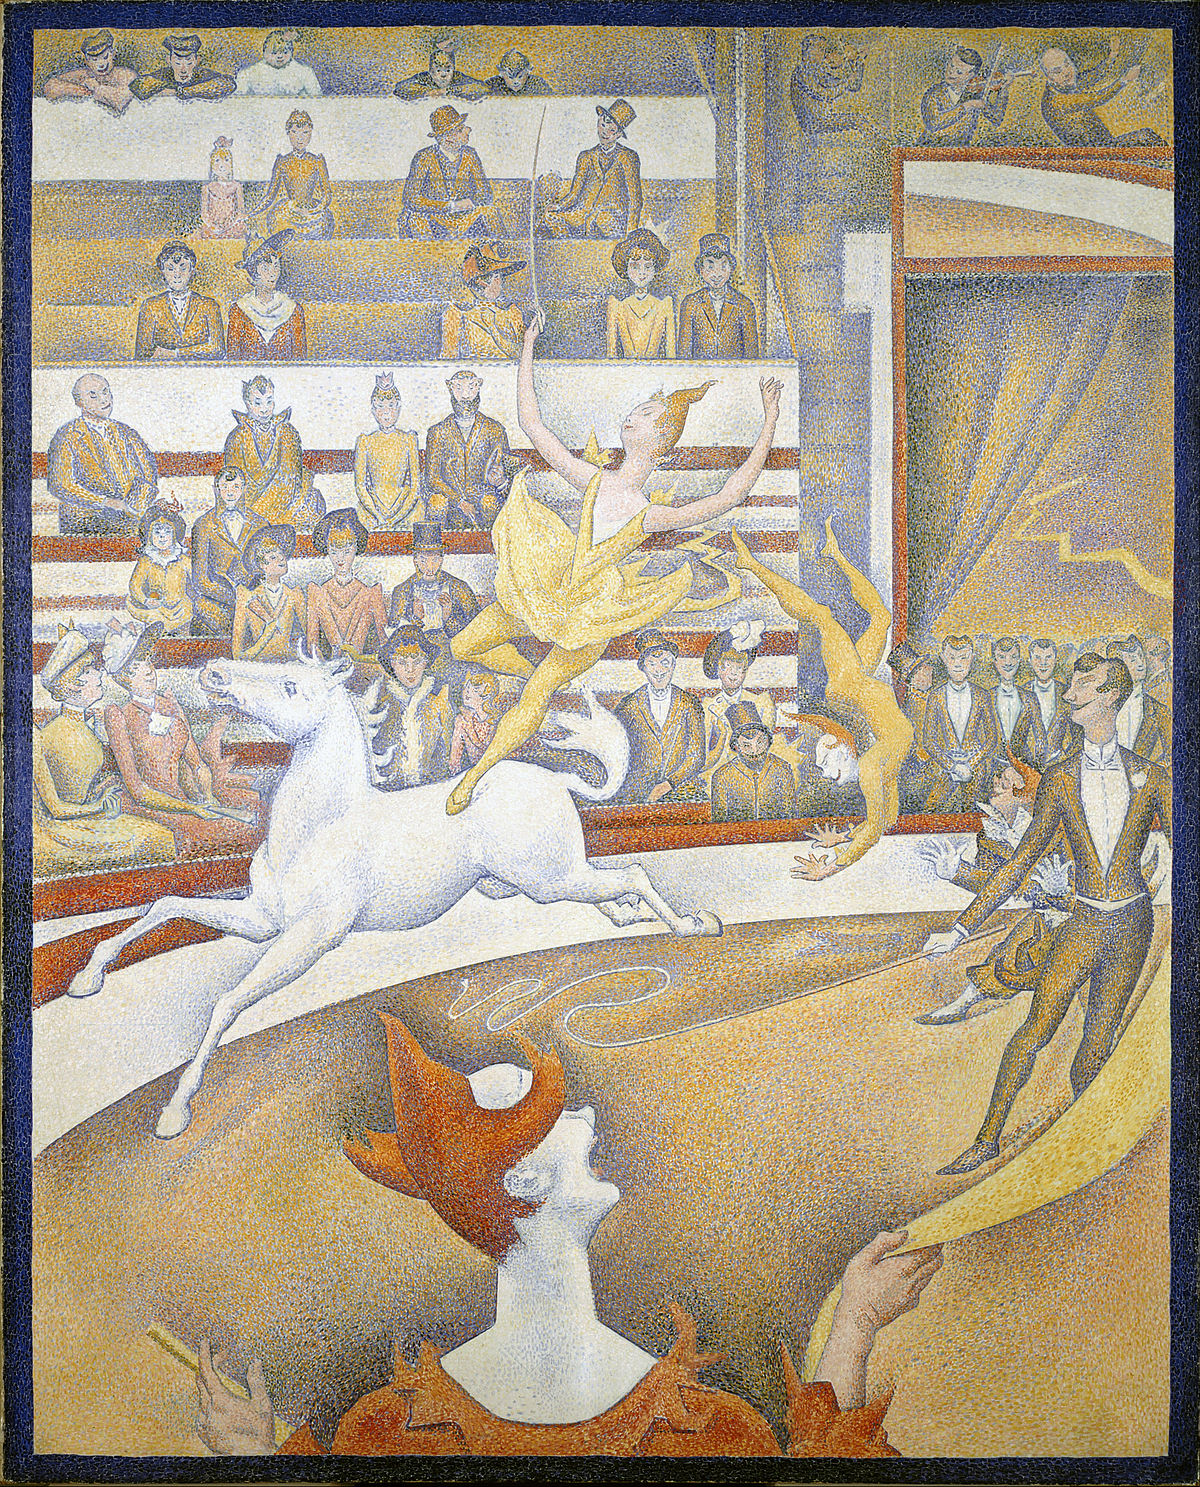 Georges Seurat, The Circus